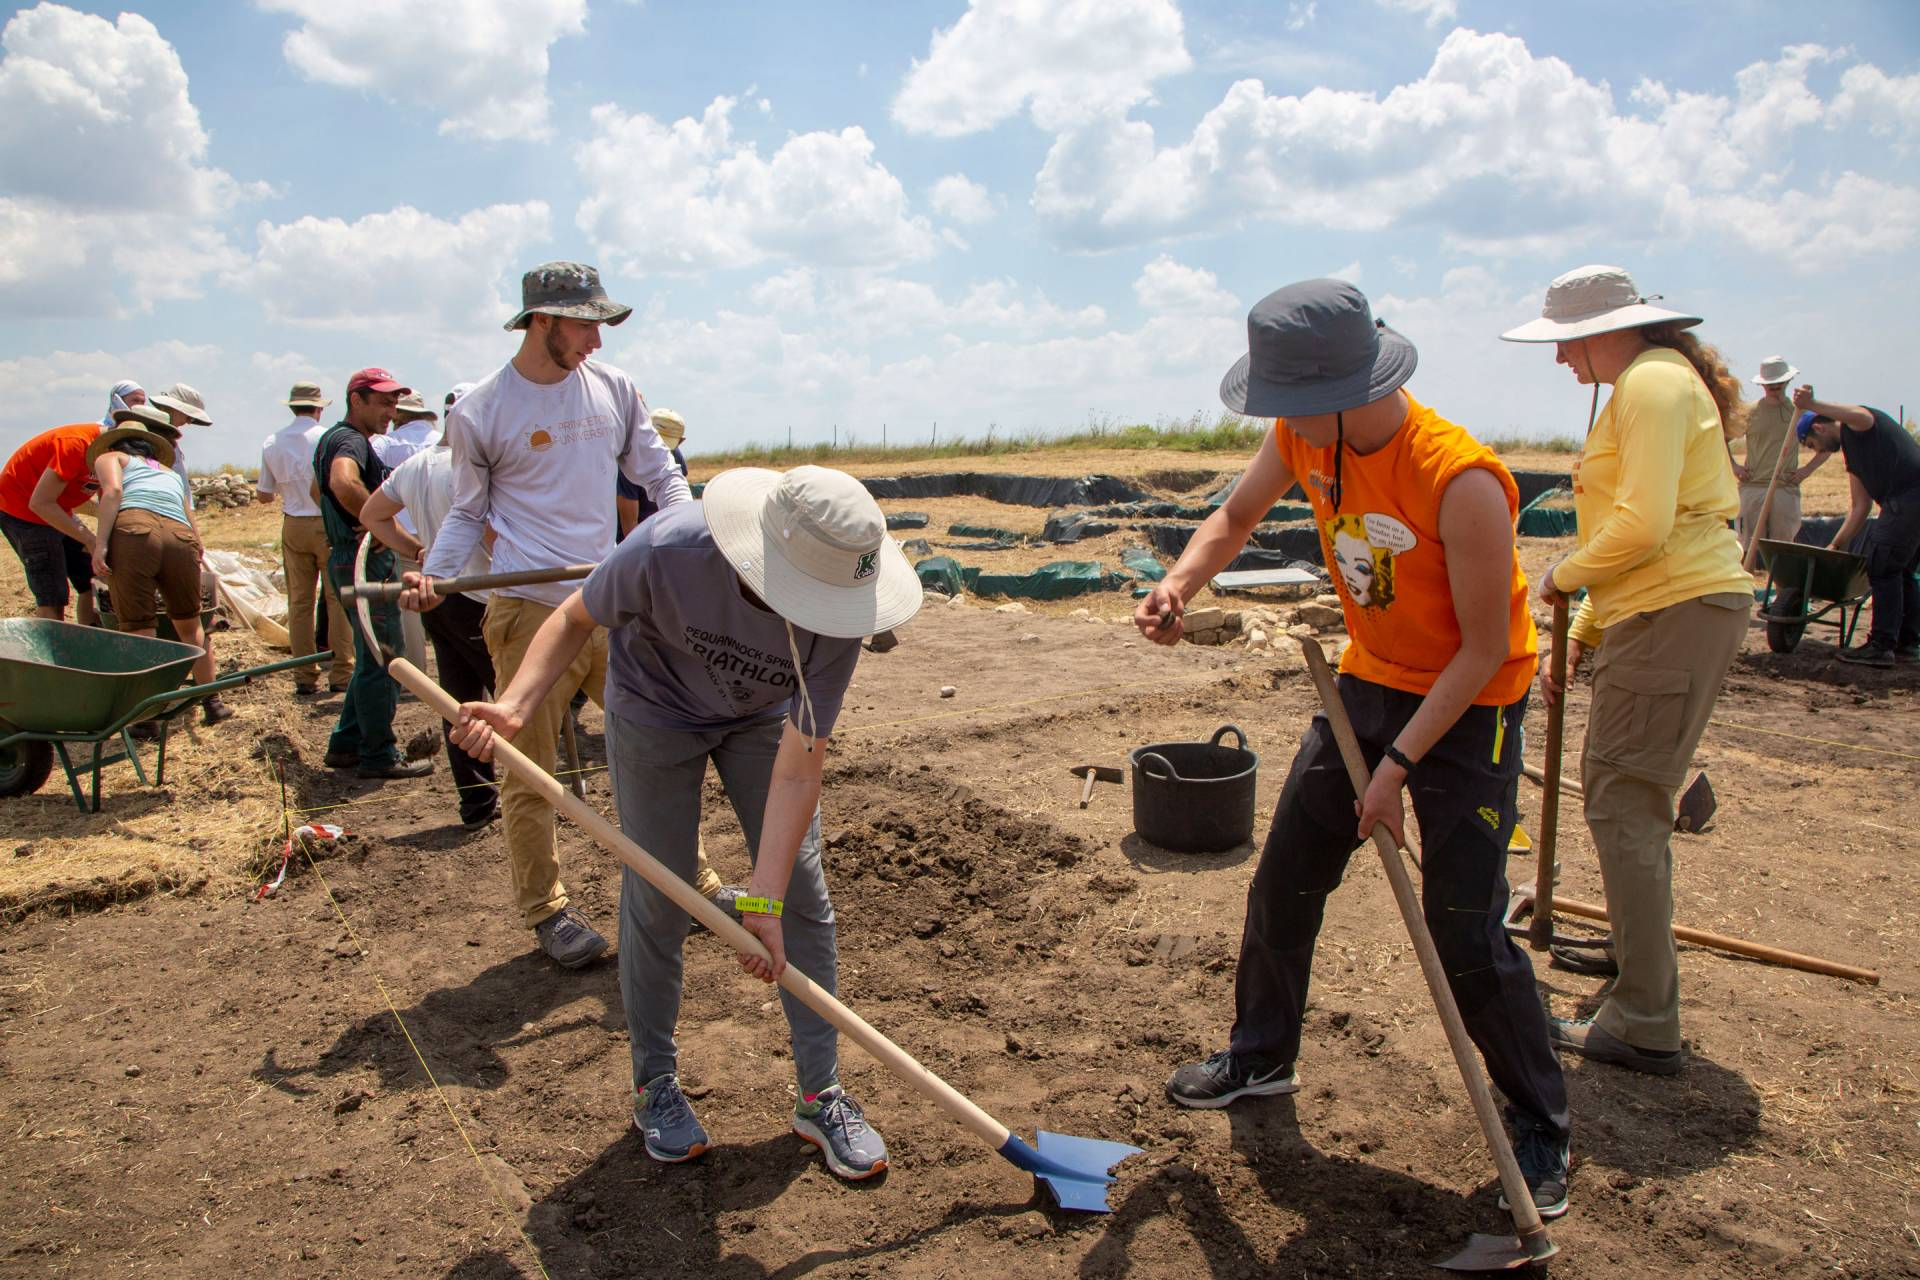 Students digging at site